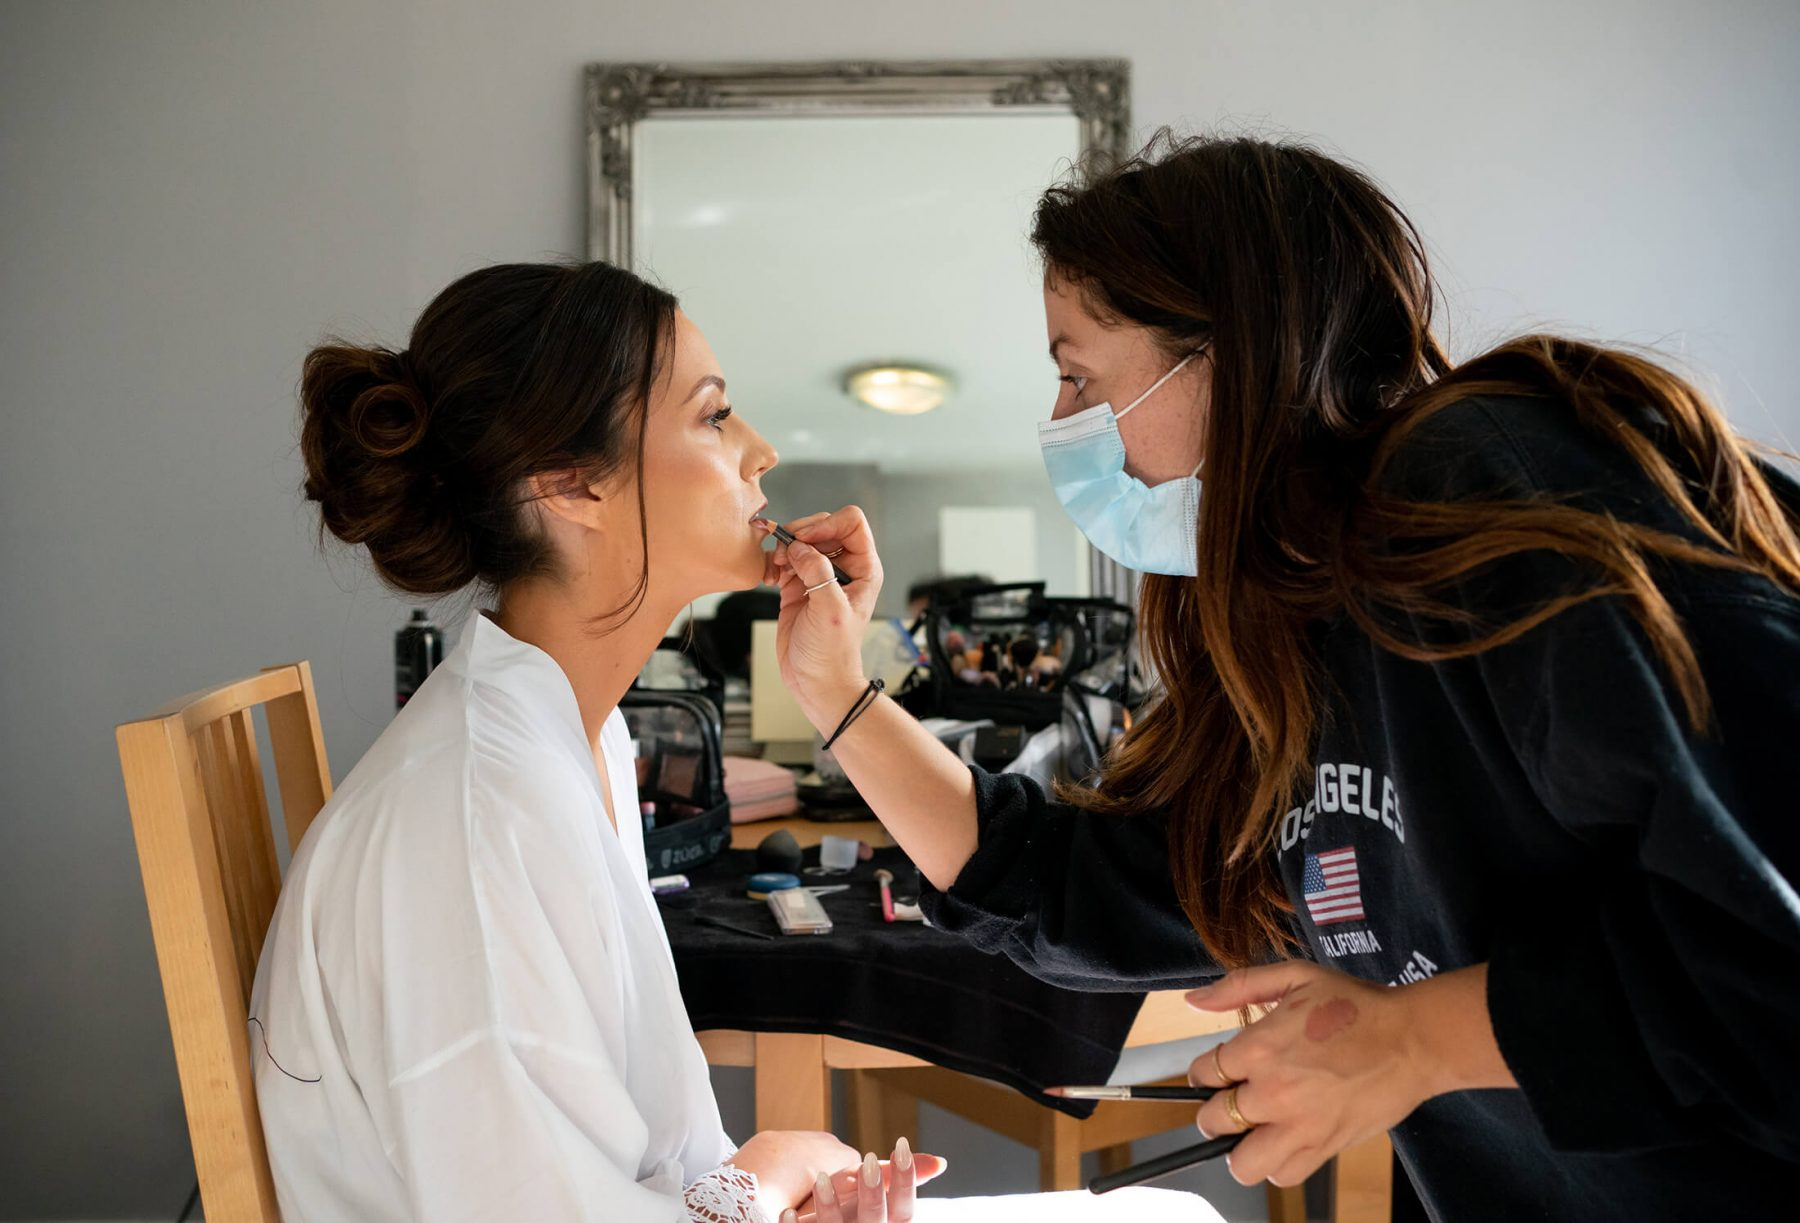 The bride getting ready at home while a makeup artist does her makeup